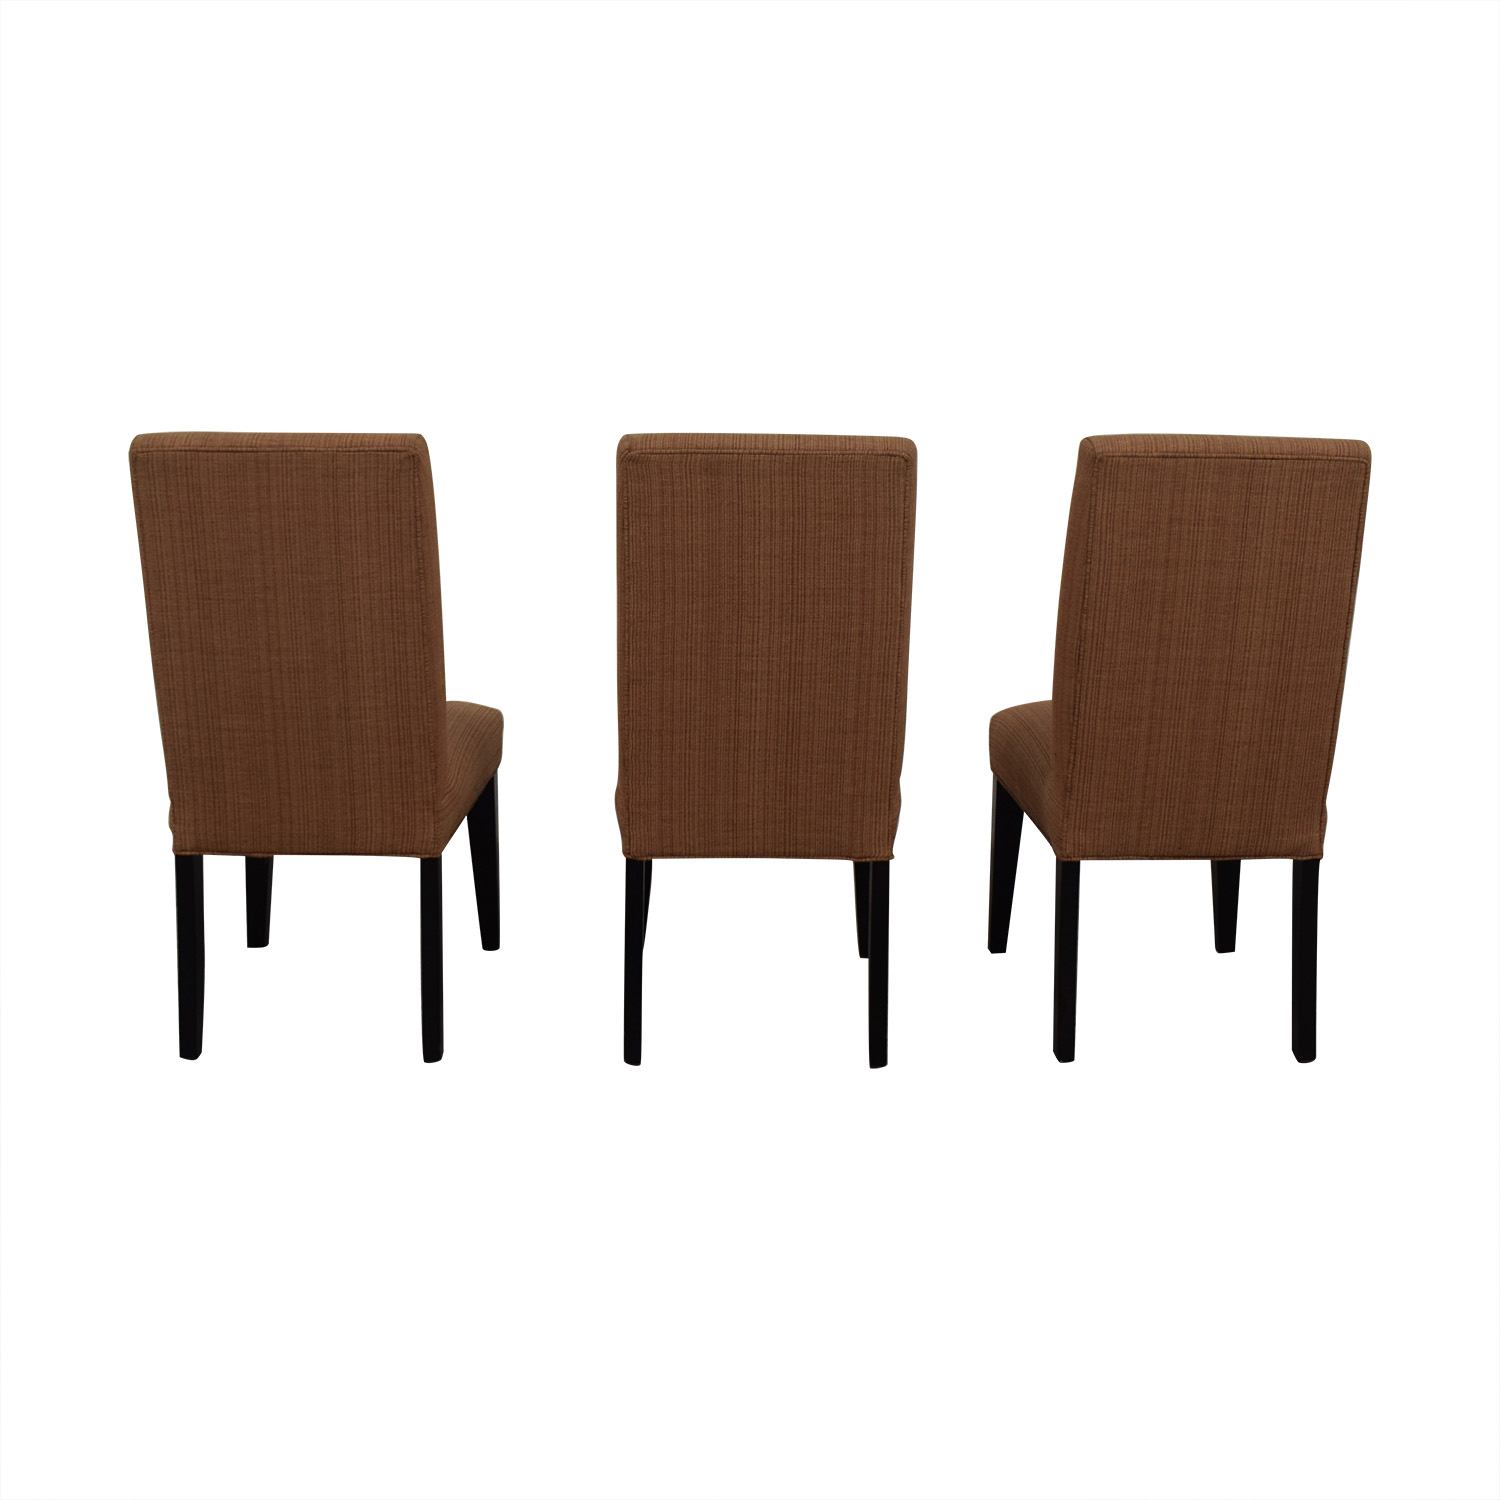 Mitchell Gold + Bob Williams Mitchell Gold + Bob Williams Anthony Side Chairs Dining Chairs